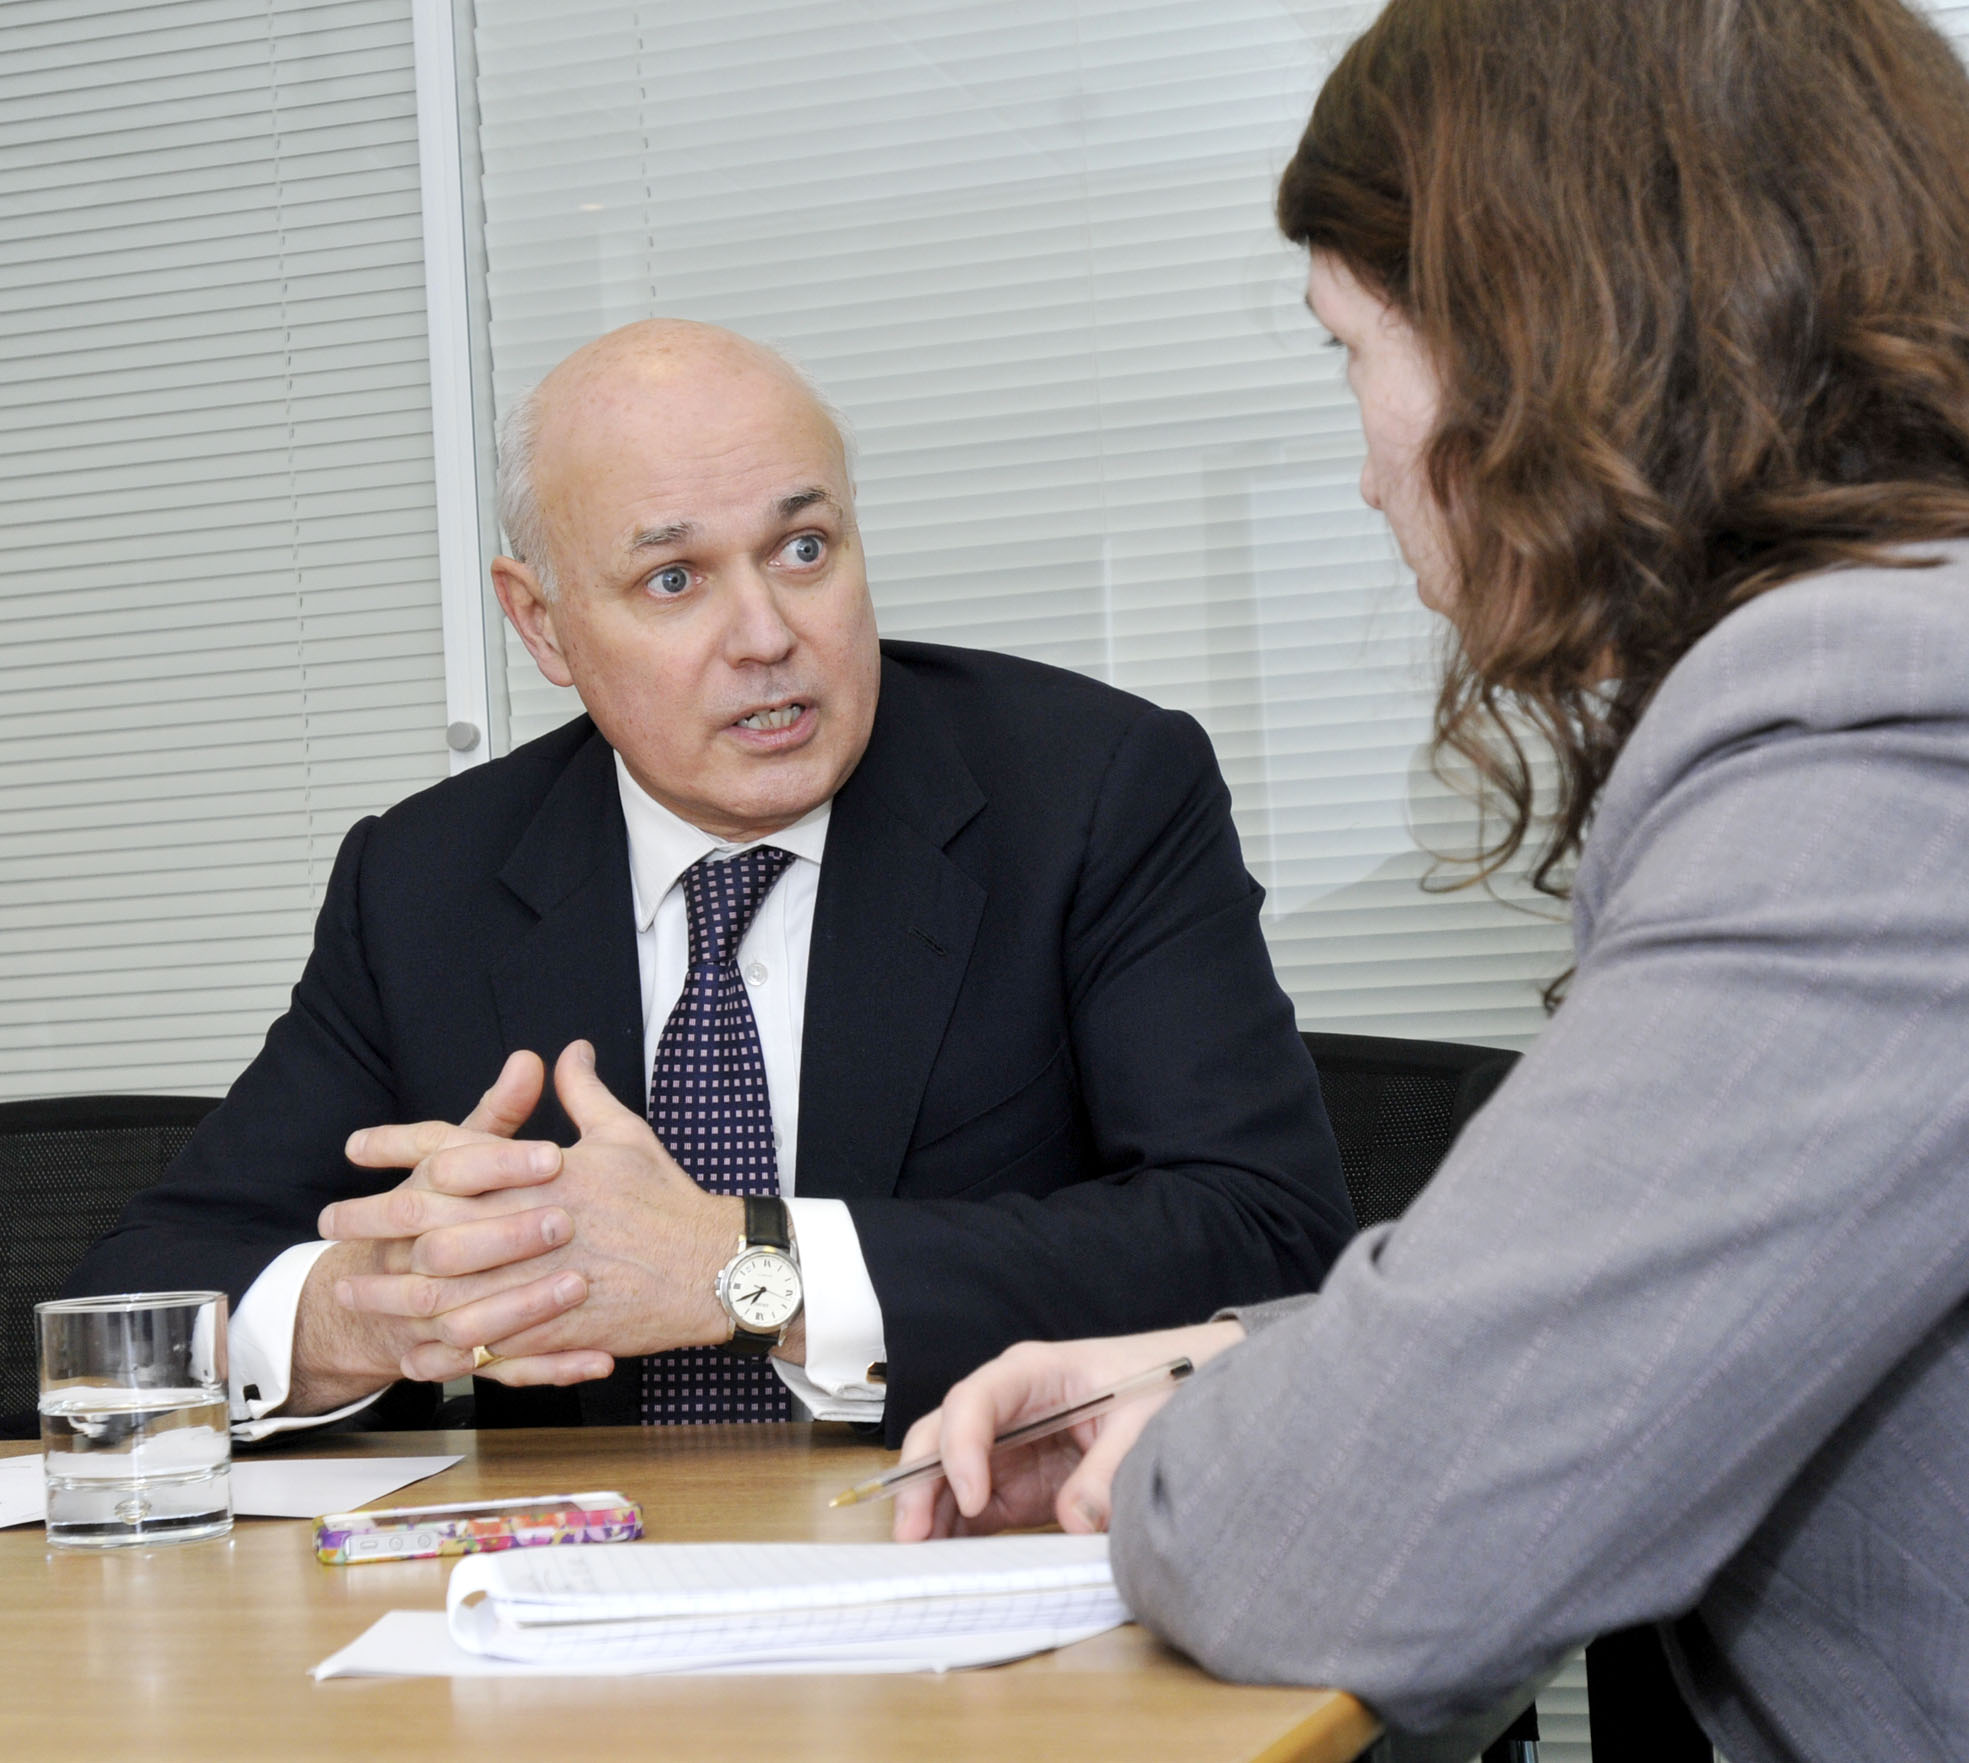 'Bedroom tax': 'Pay up or get out,' says Iain Duncan Smith